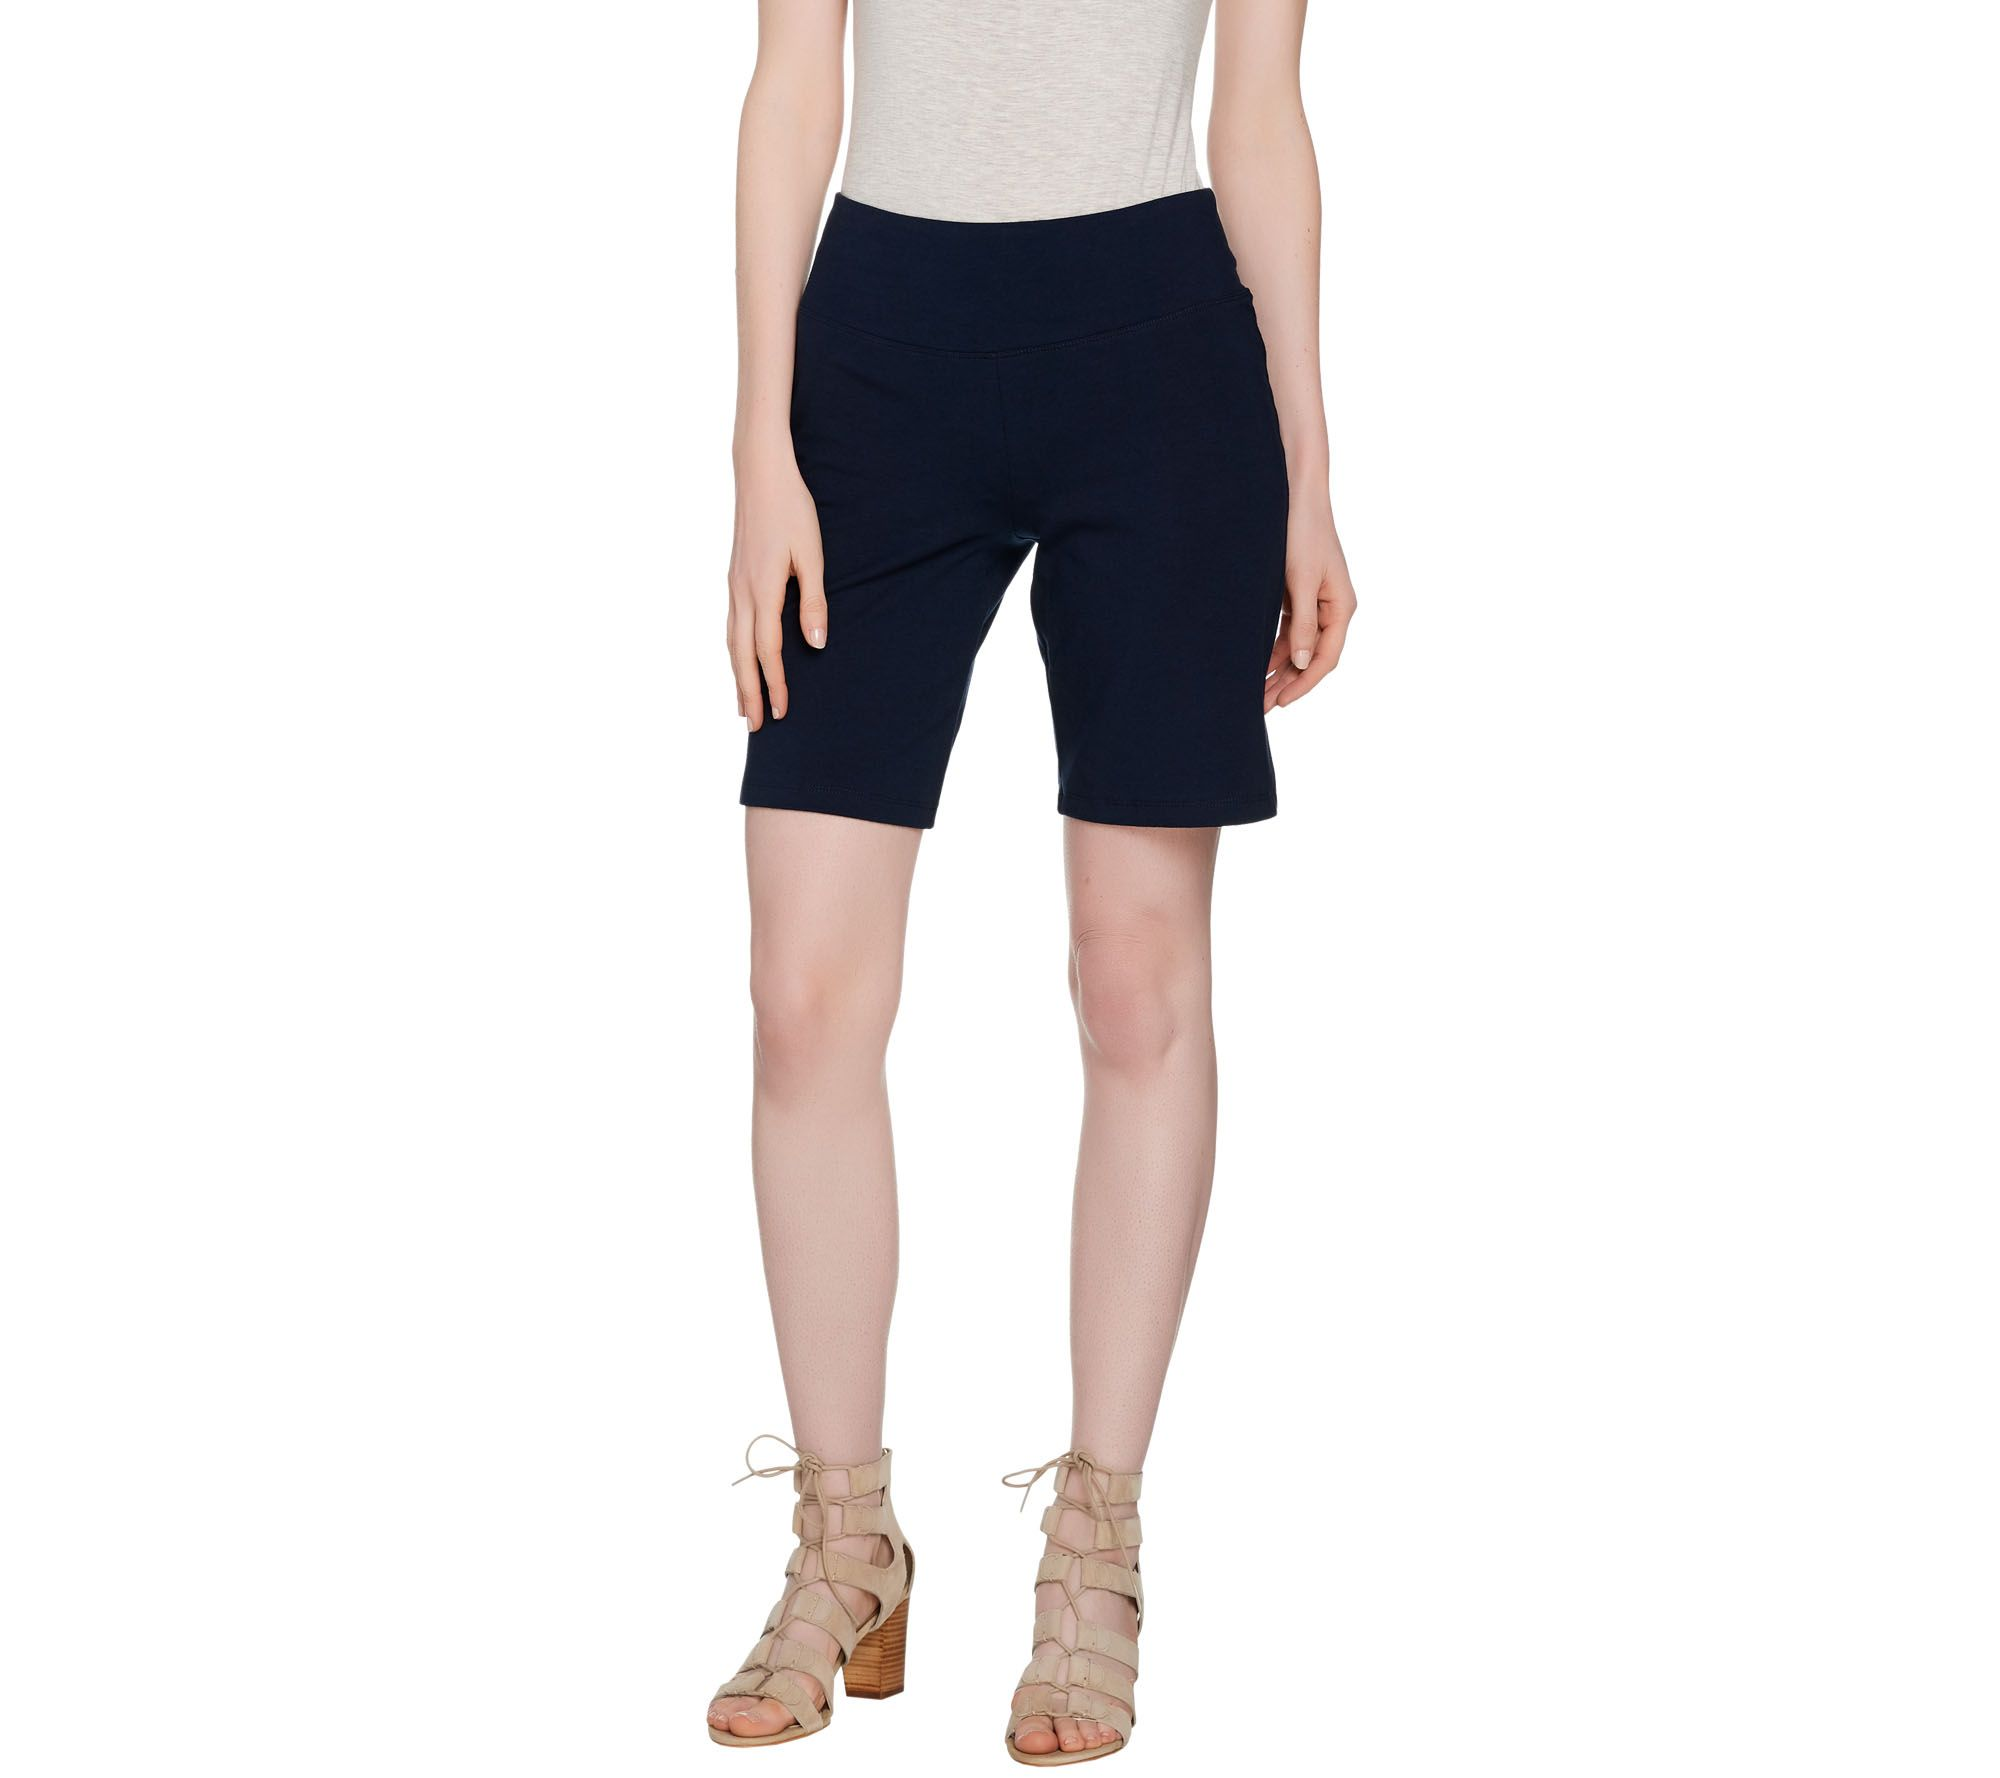 Shorts — Pants — Fashion — QVC.com